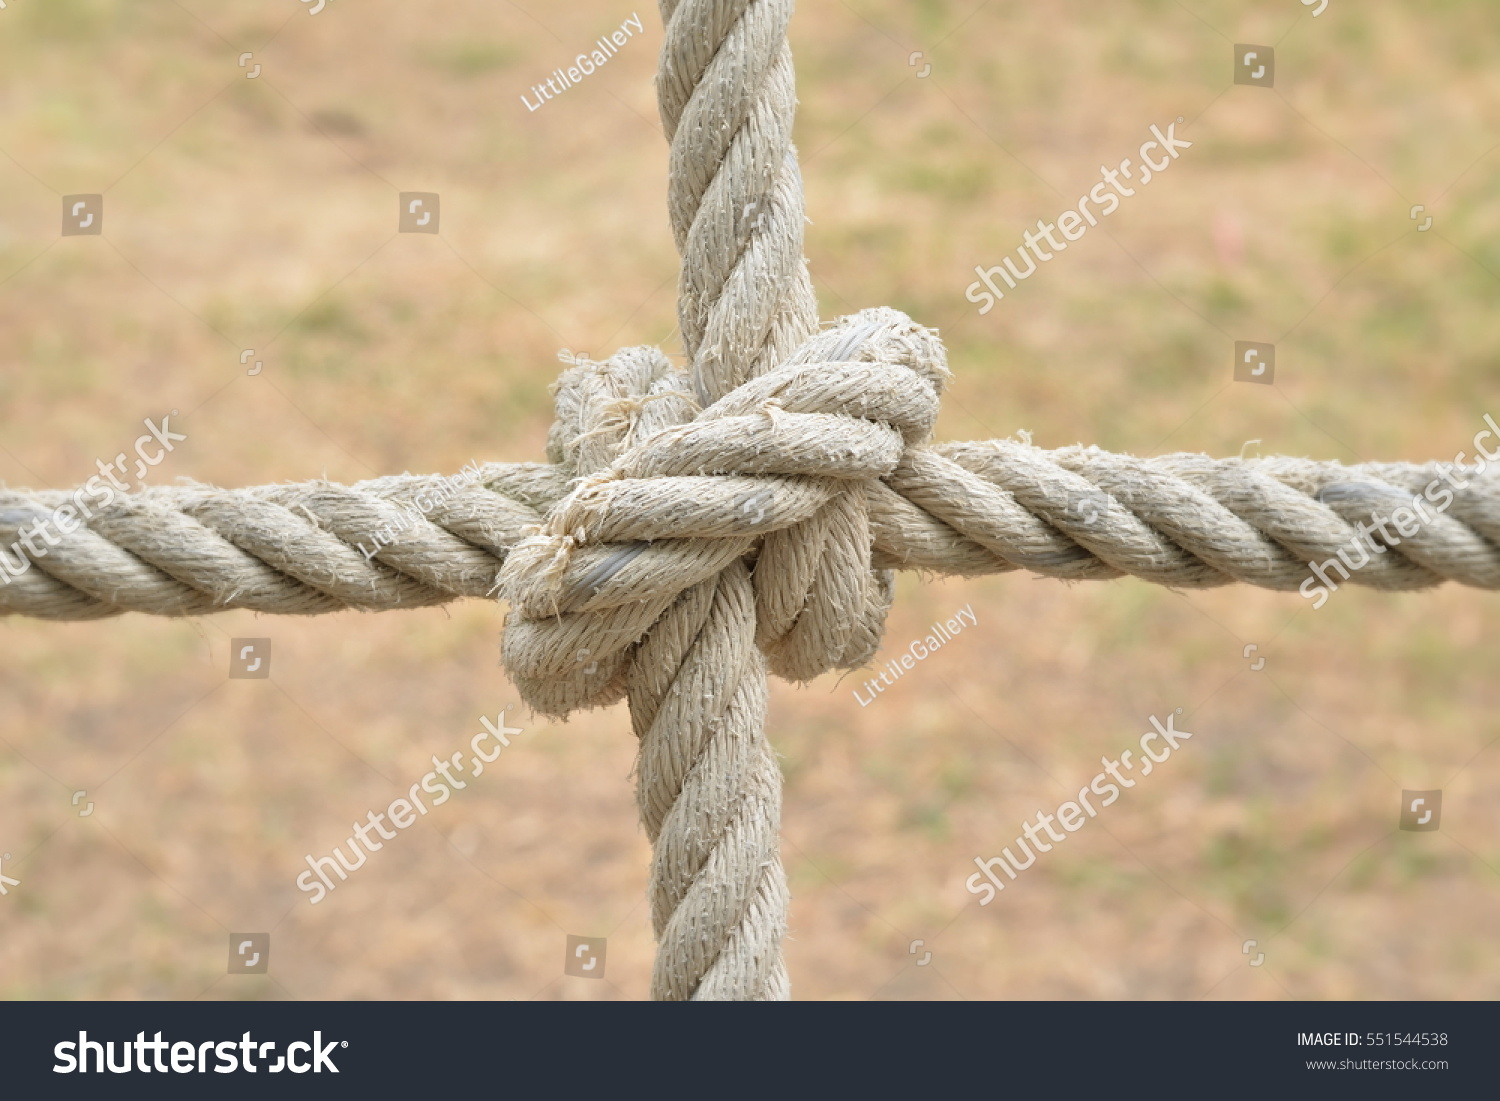 Rope knot line tied together nature stock photo 551544538 rope knot line tied together with nature backgroundas a symbol for trust teamwork biocorpaavc Choice Image